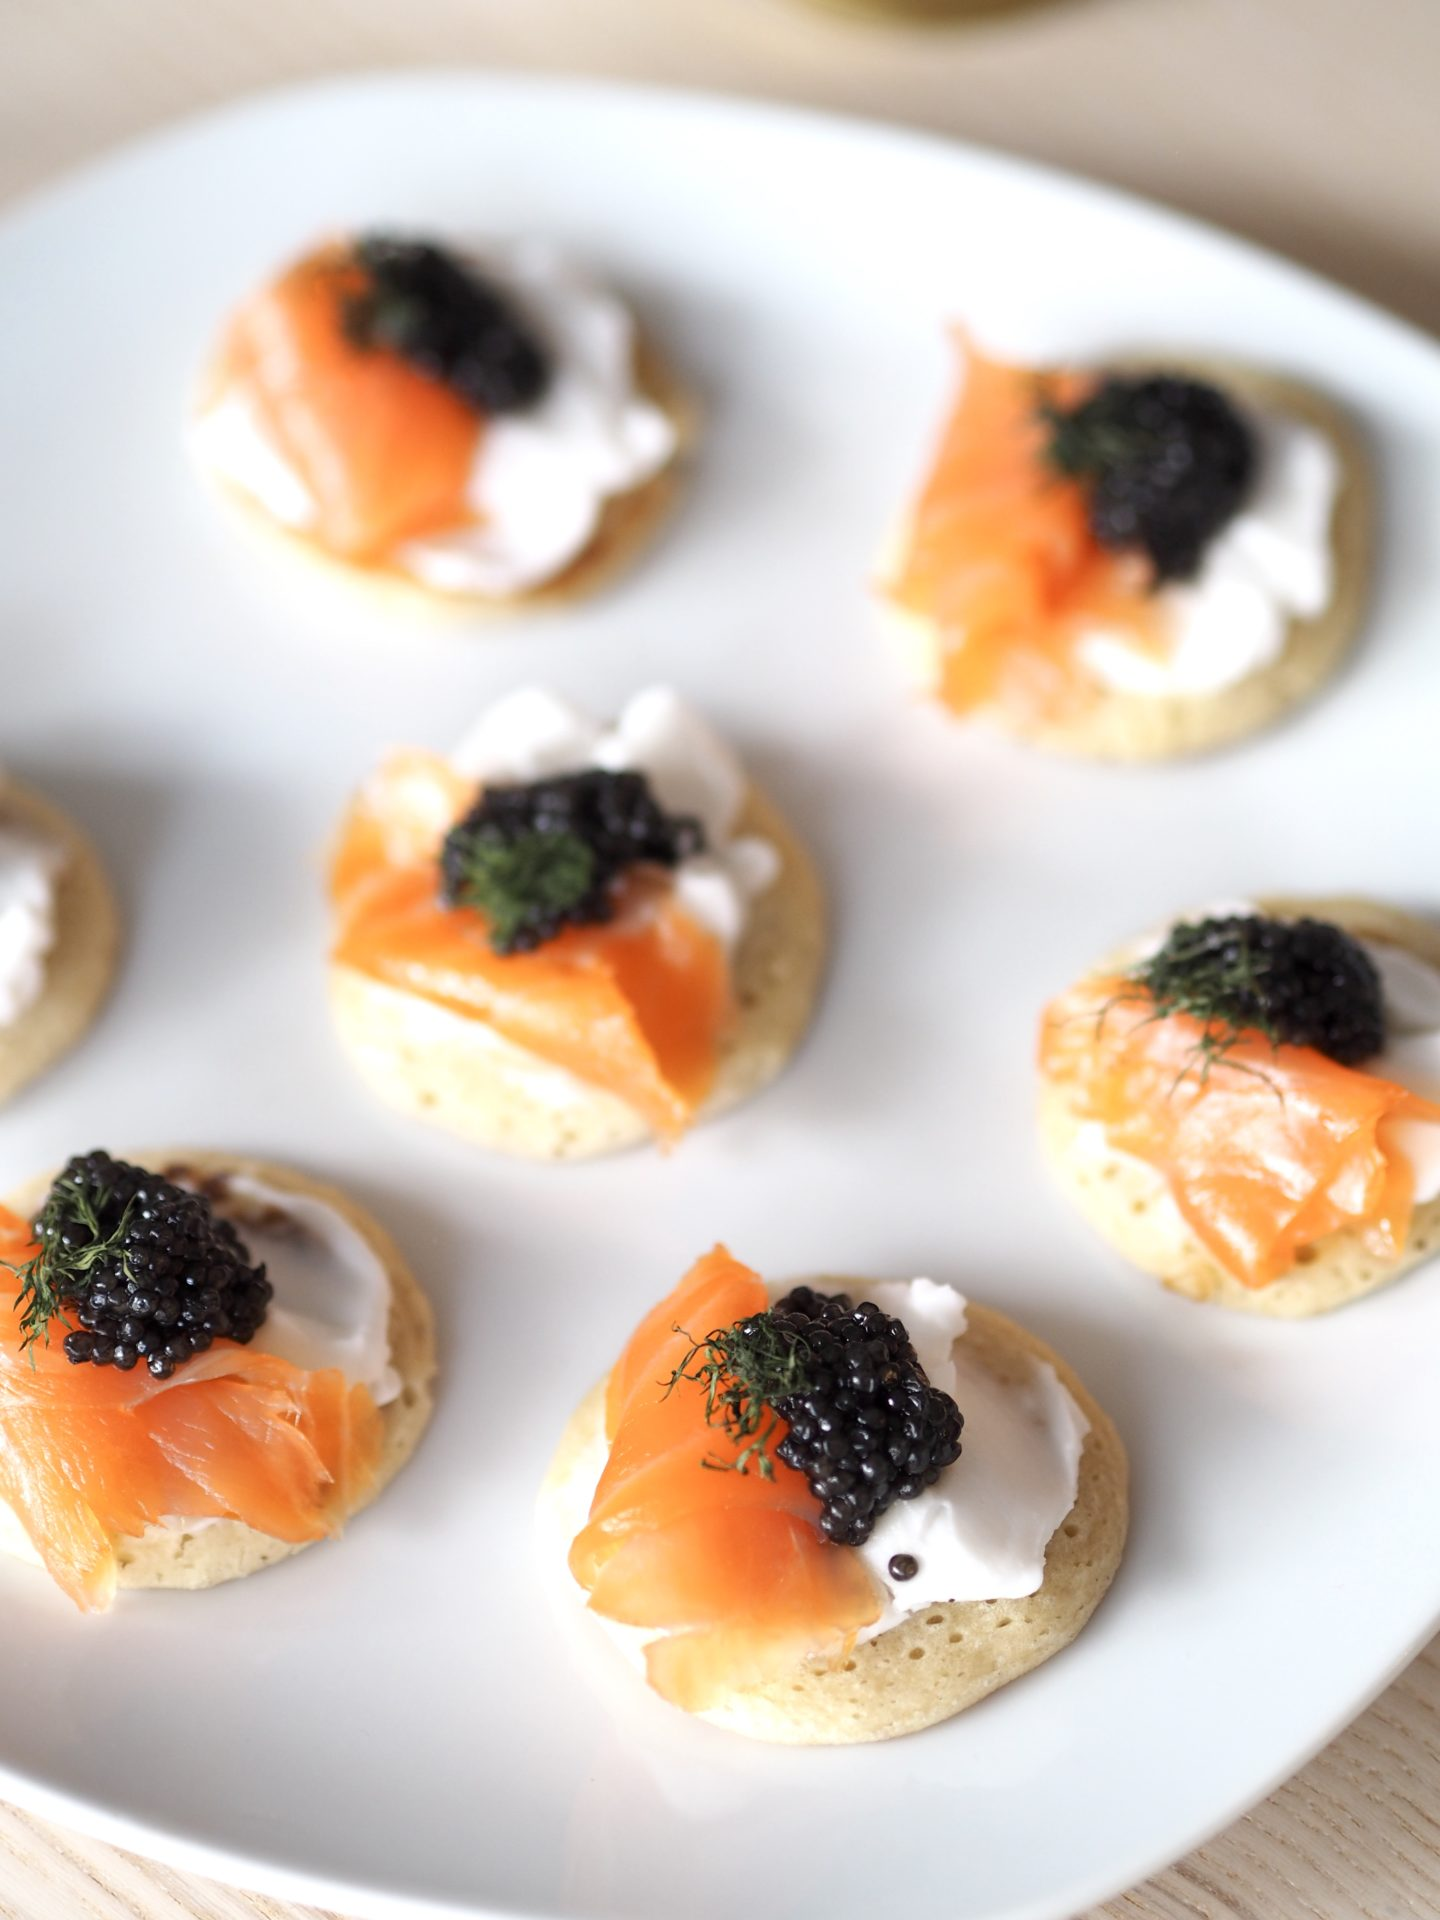 Caviar party appetizers with smoked salmon